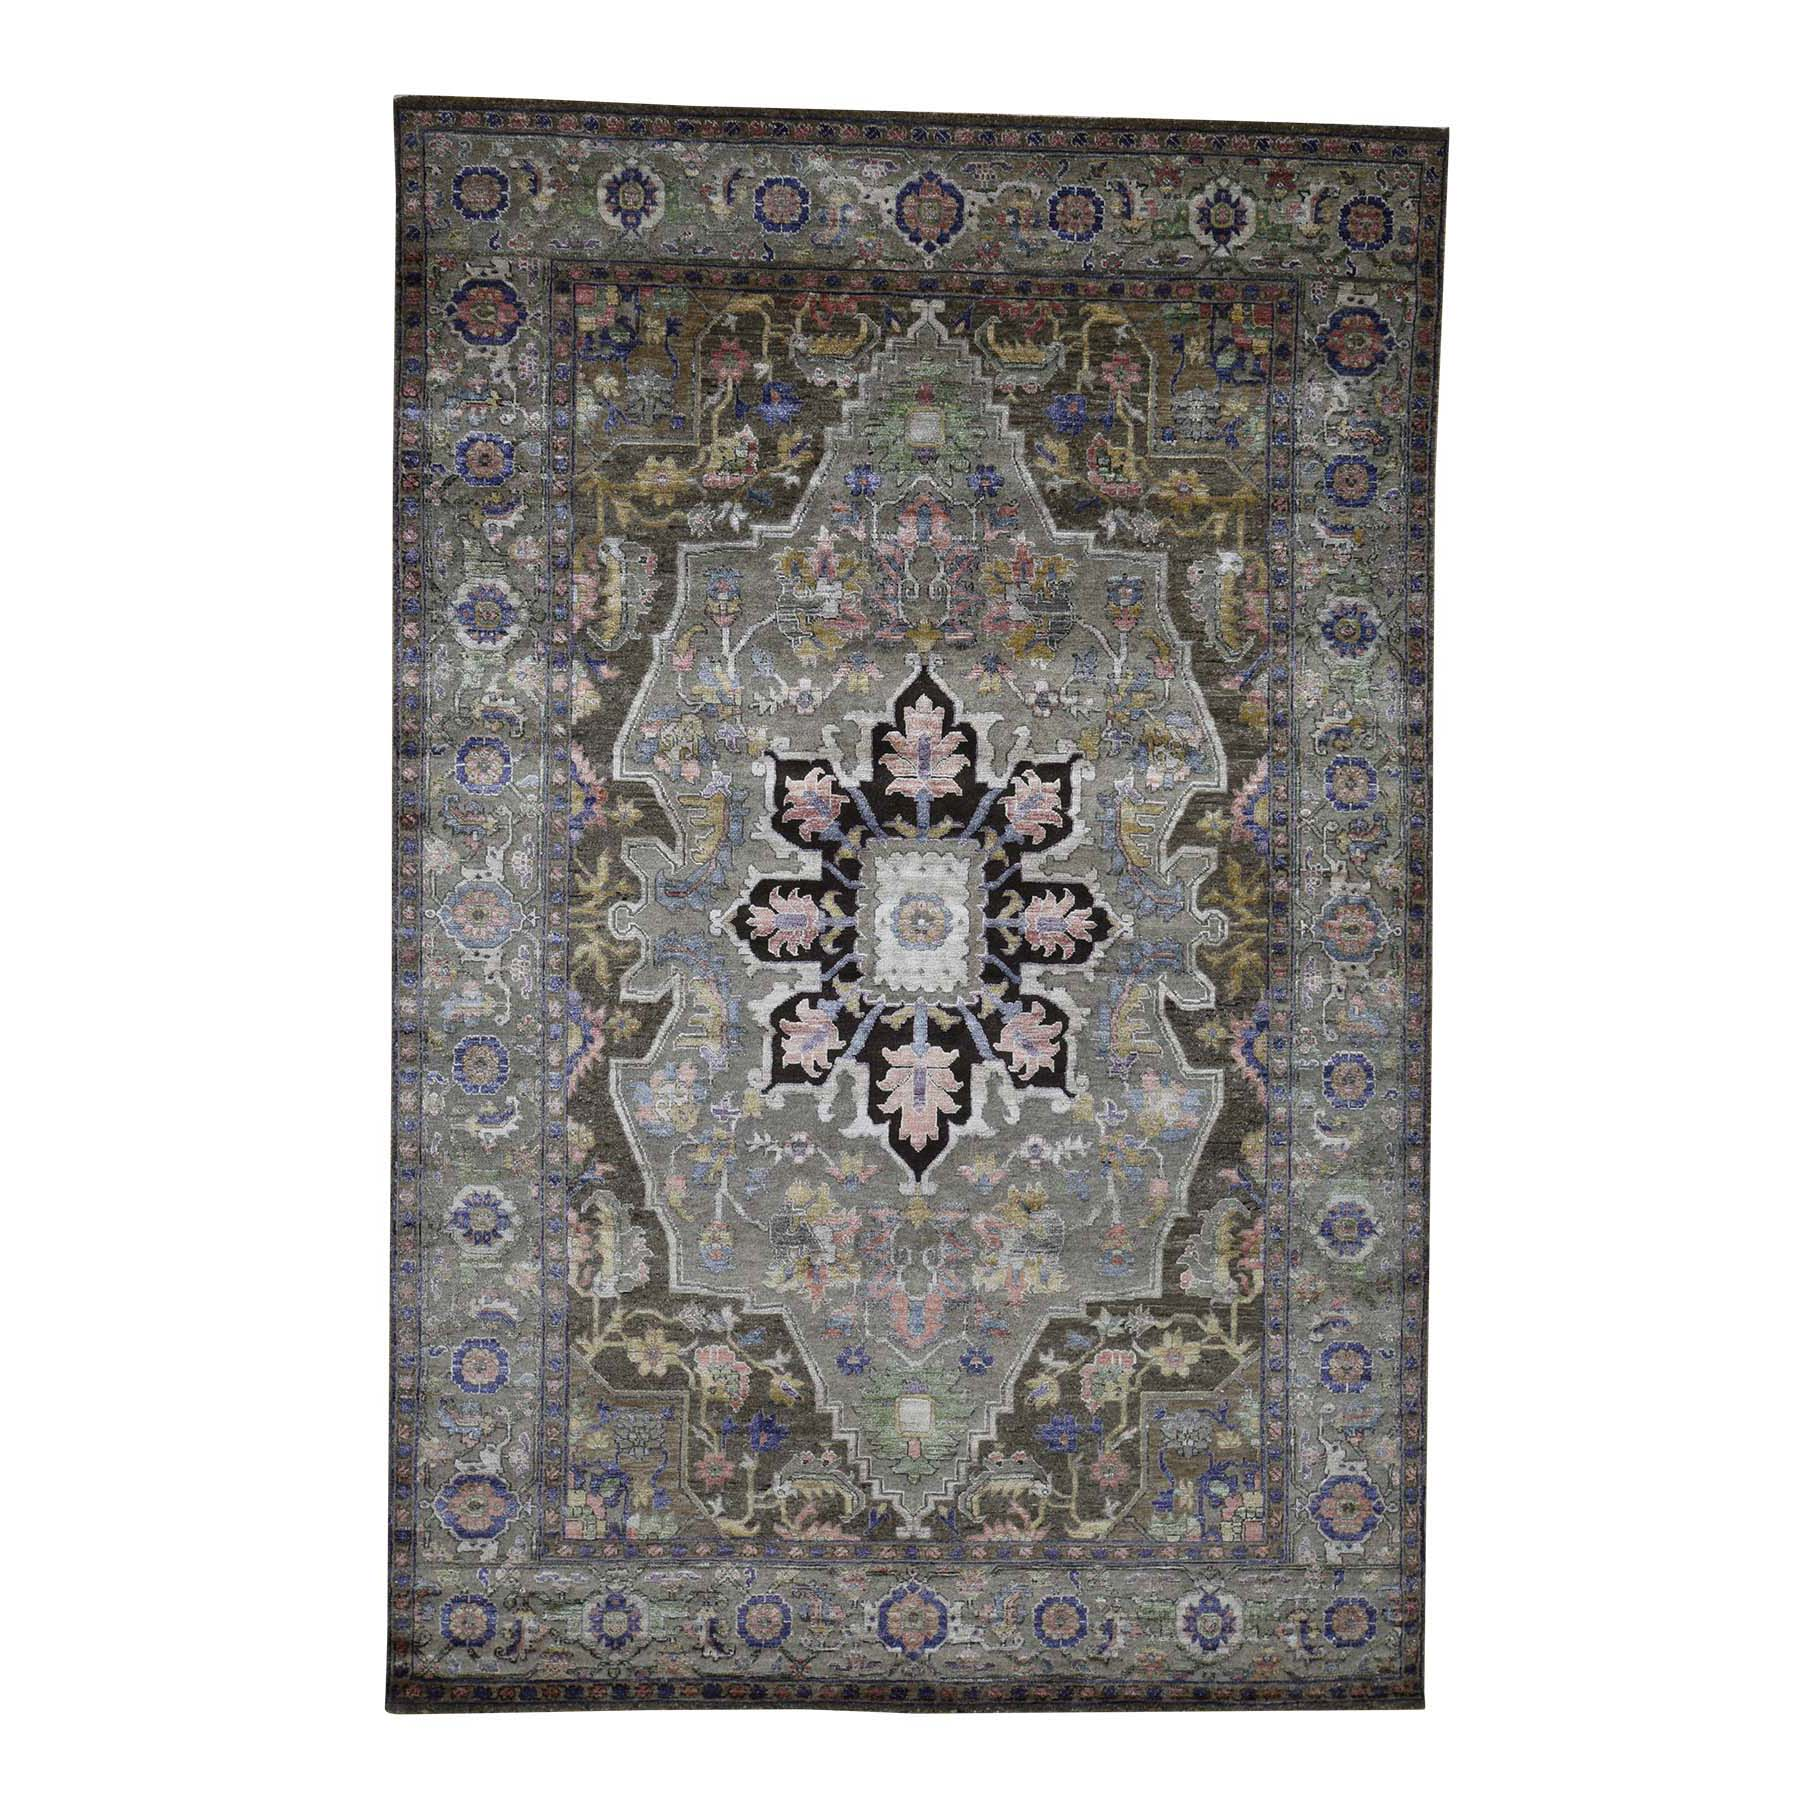 6'X9' Heriz Design Wool And Silk Hand-Knotted Oriental Rug moada8d7